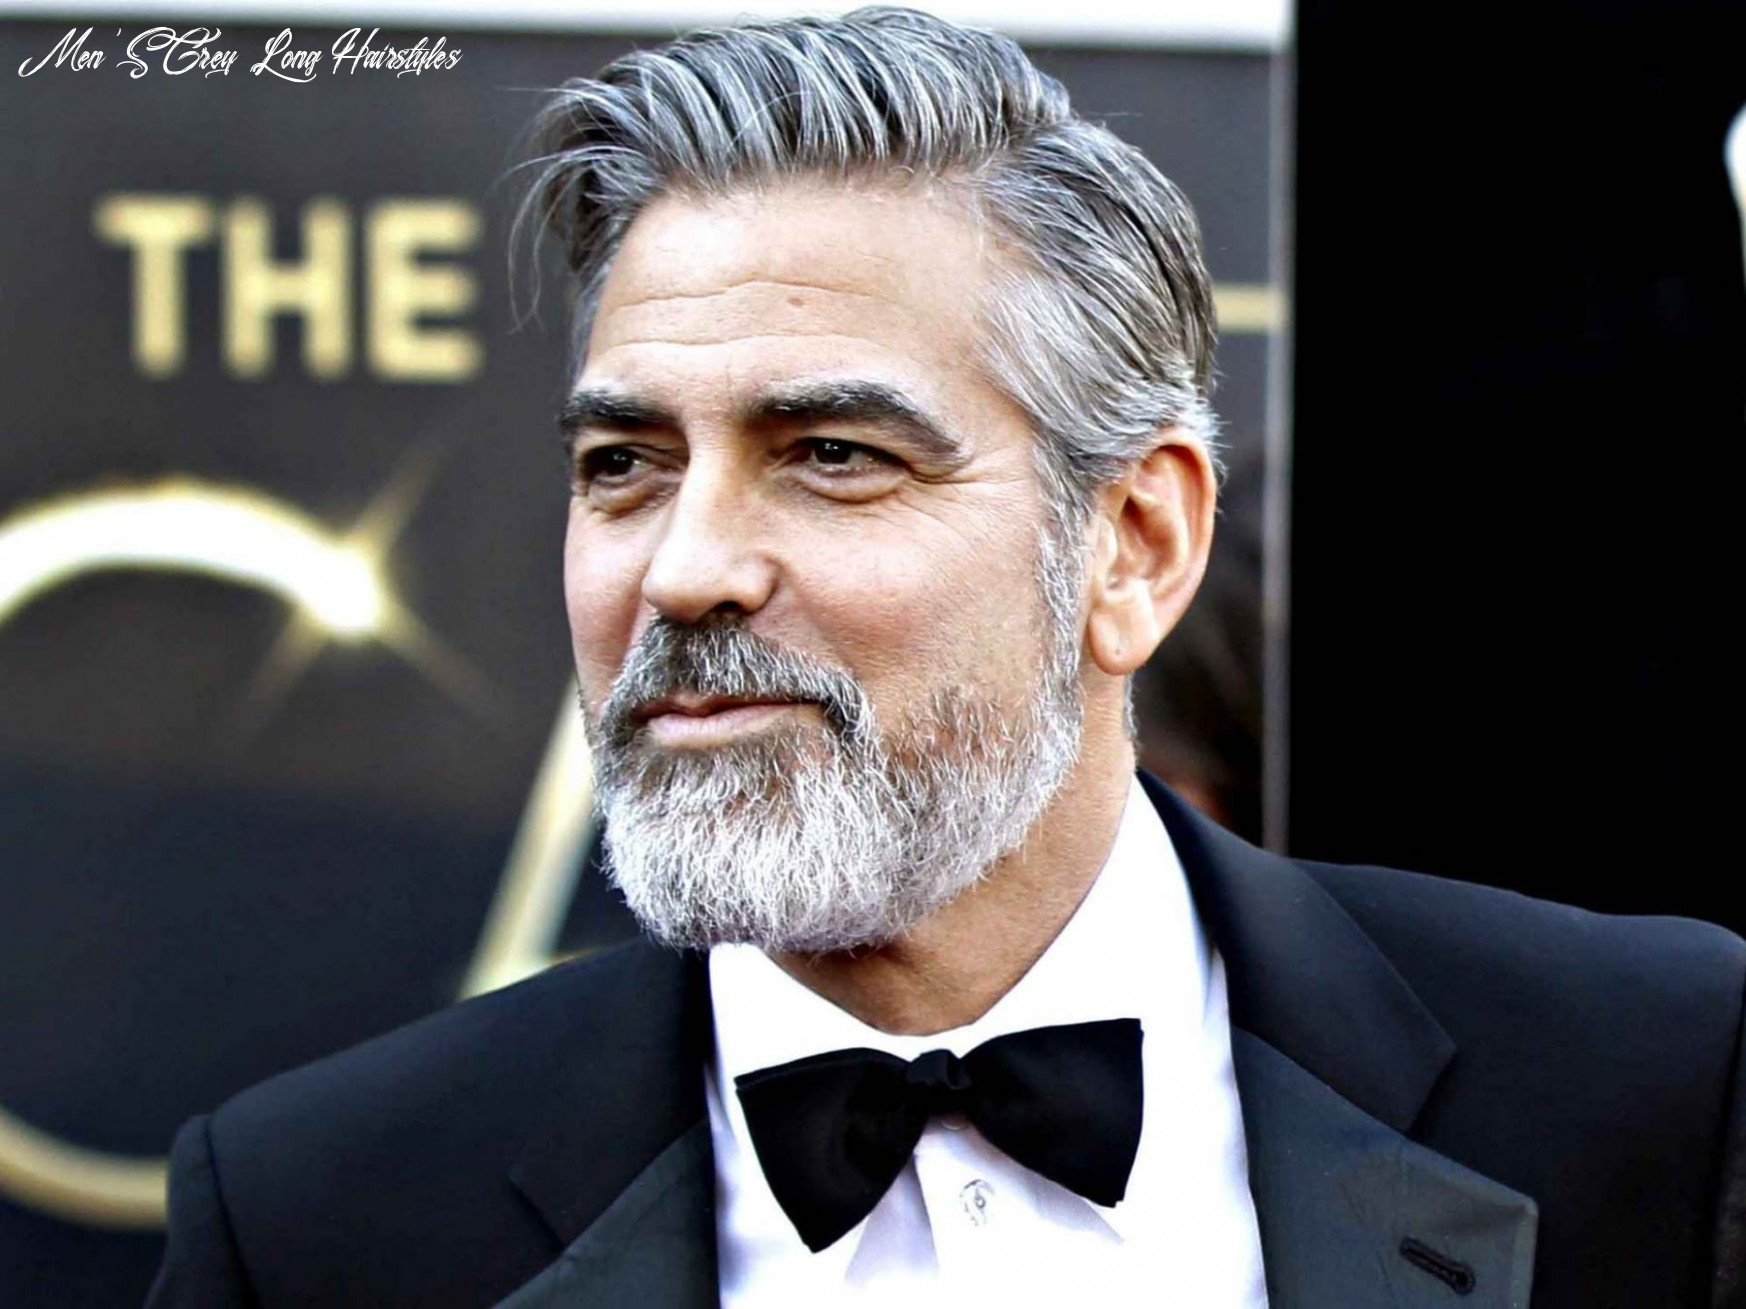 How to Deal With Grey Hair | Man of Many